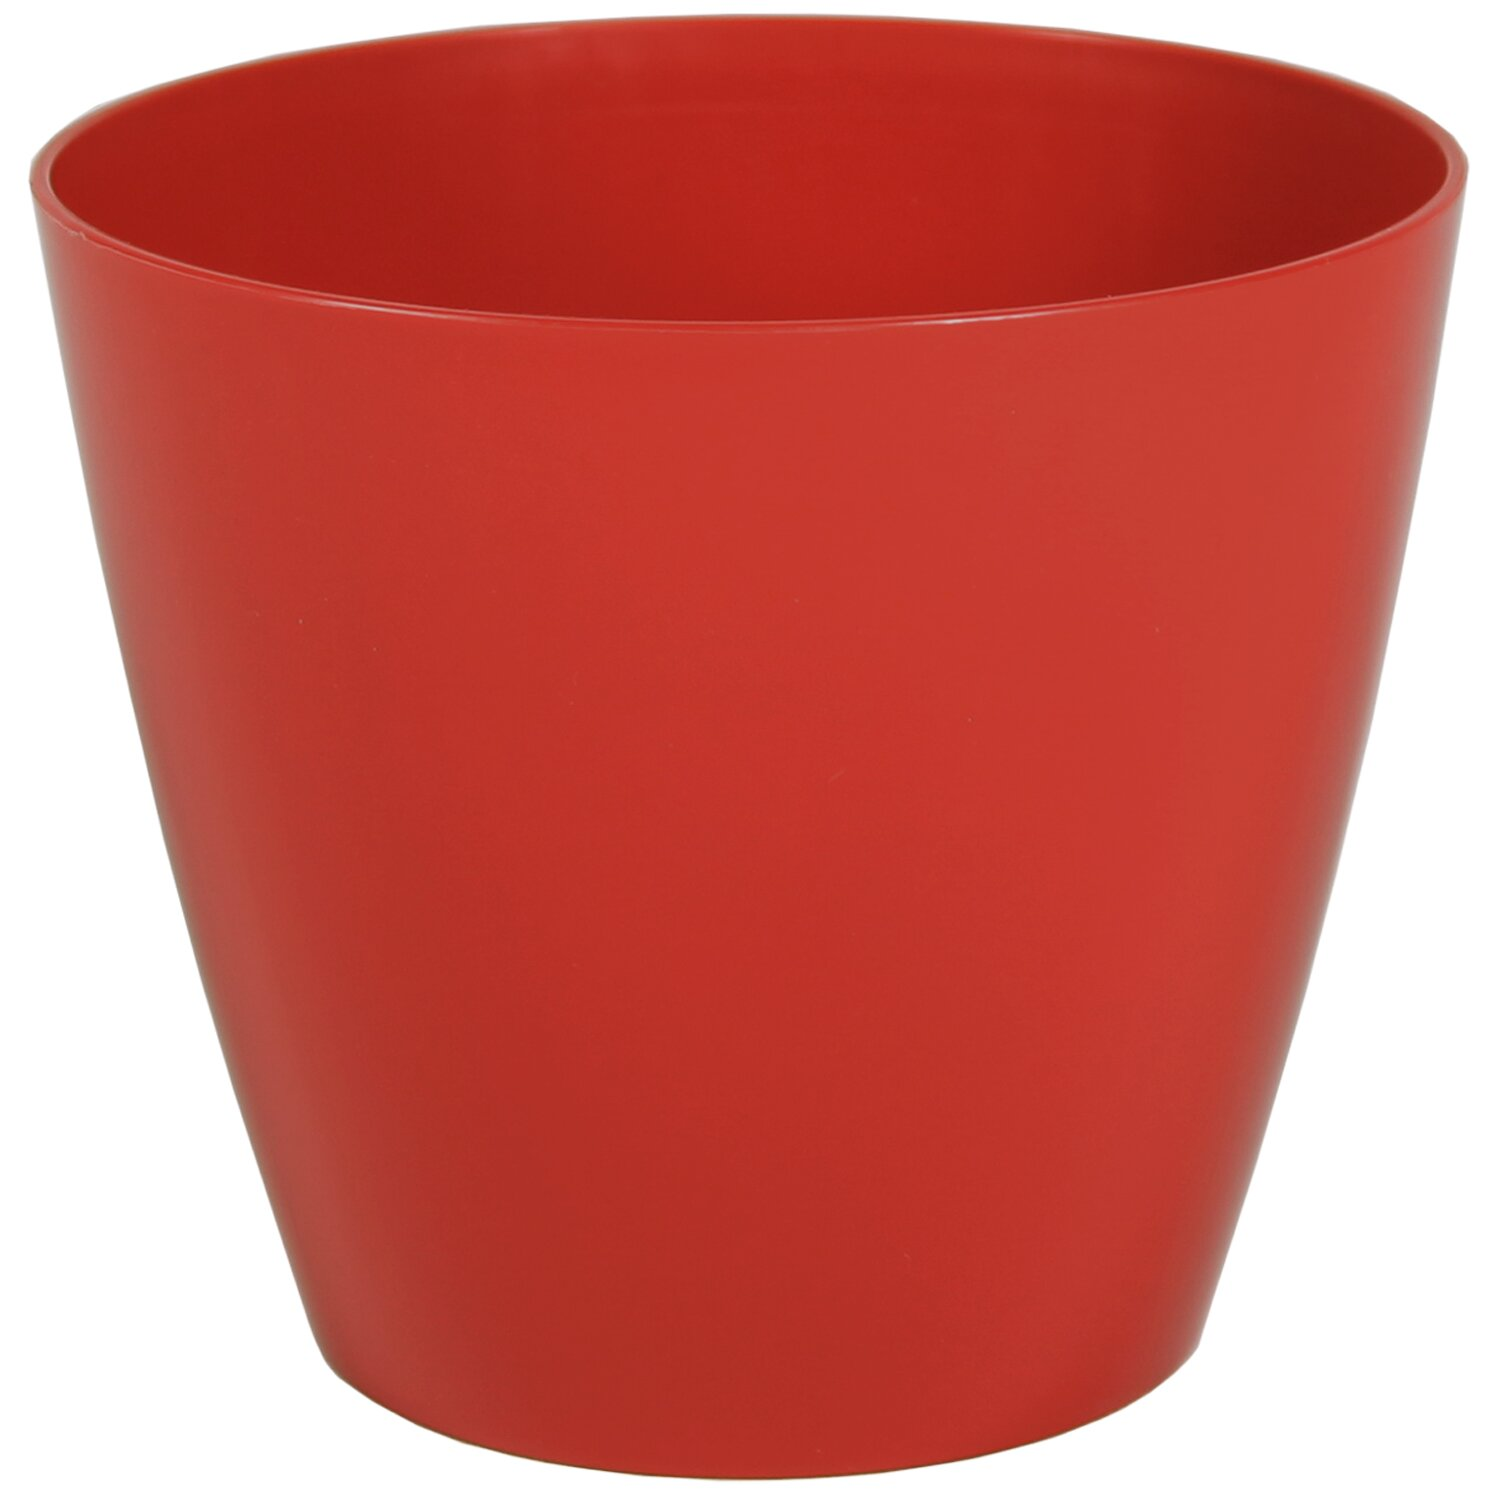 Wayfair Basics Wayfair Basics Plastic Pot Planter